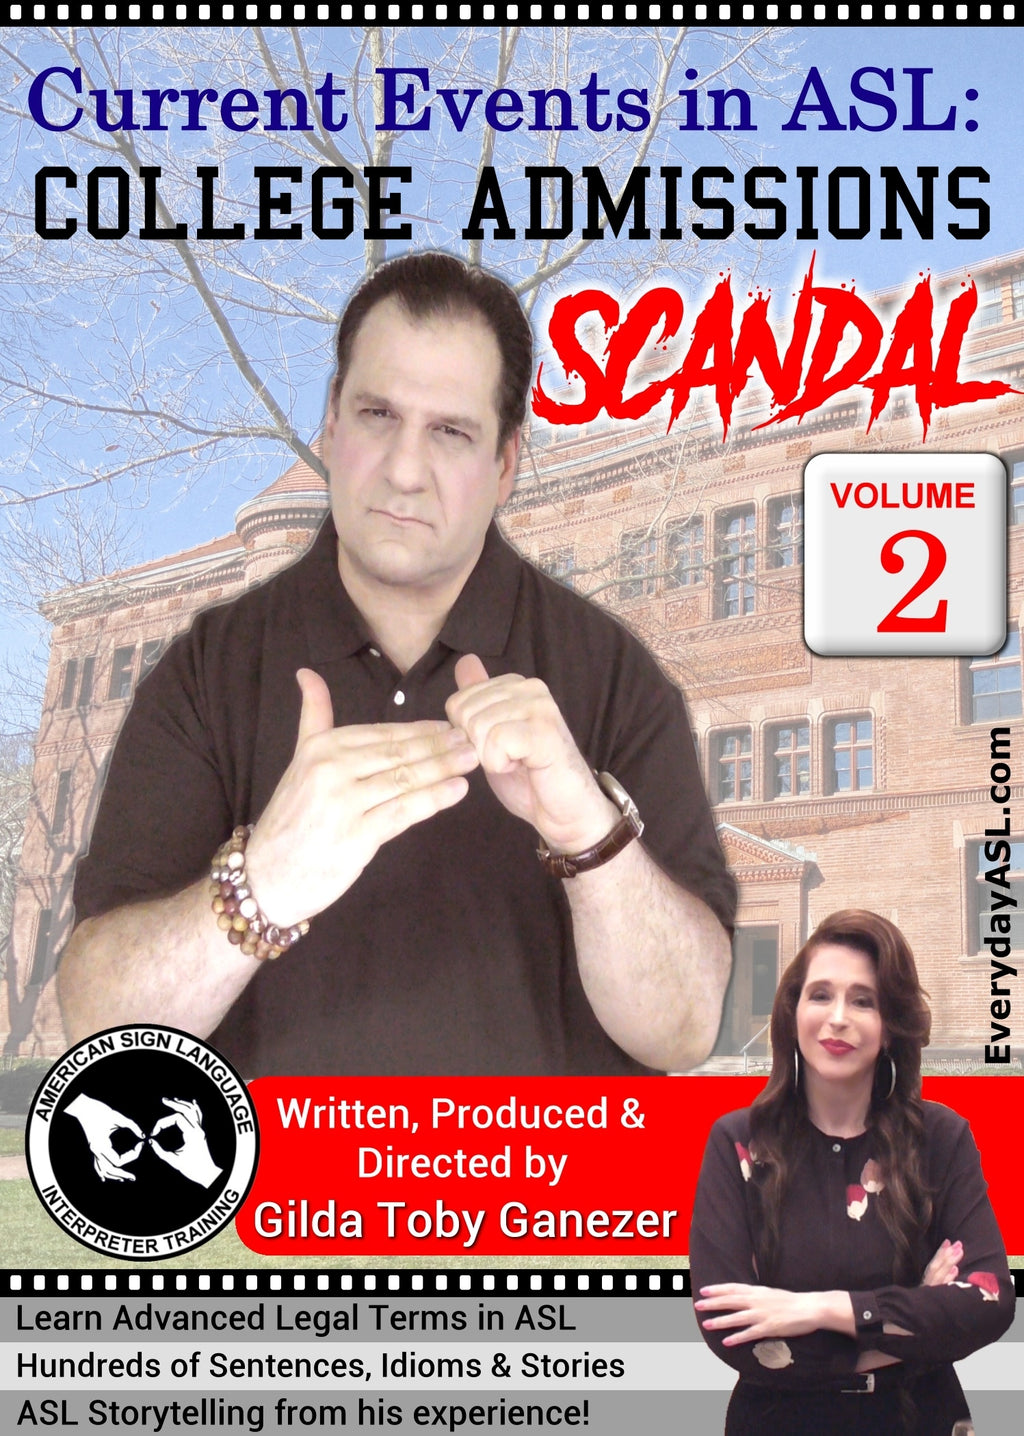 Current Events in ASL: College Admissions Scandal Vol. 2